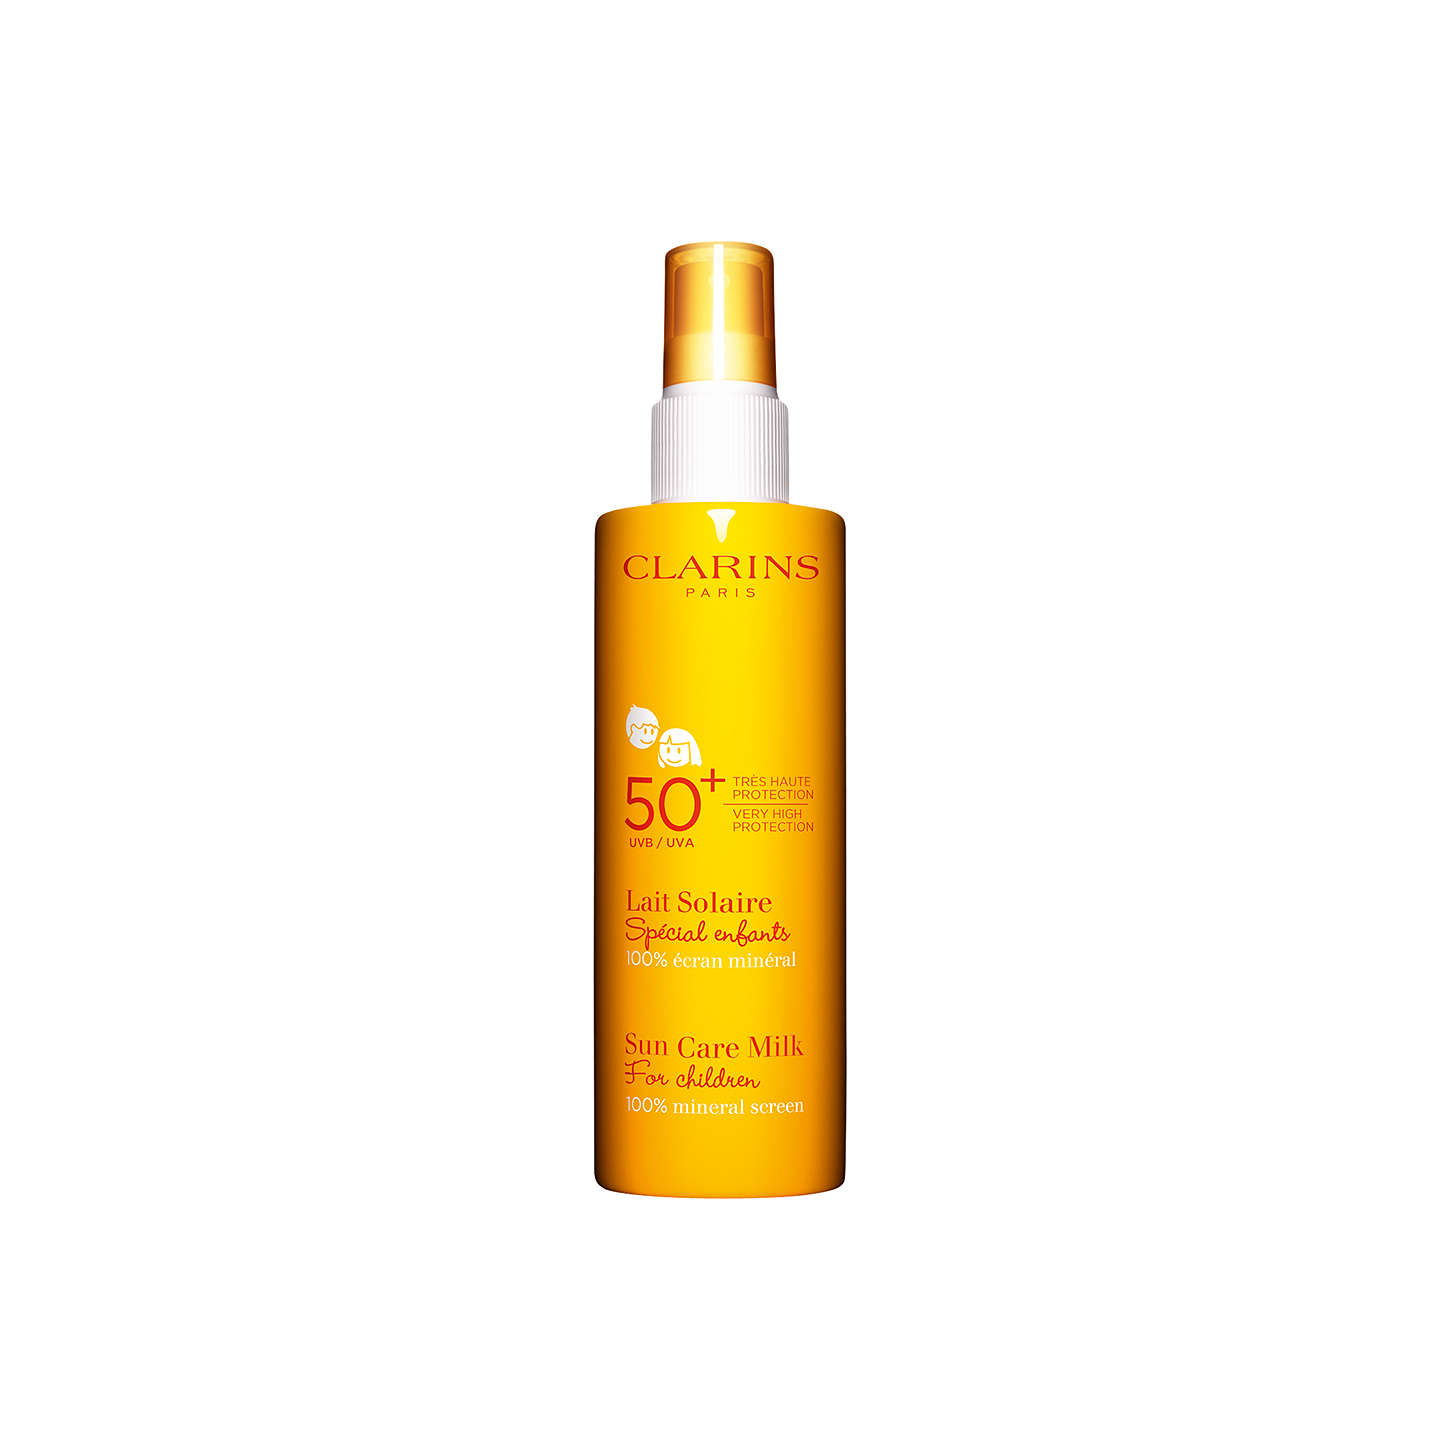 BuyClarins Sun Care Milk for Children UVA/UVB 50+, 150ml Online at johnlewis.com